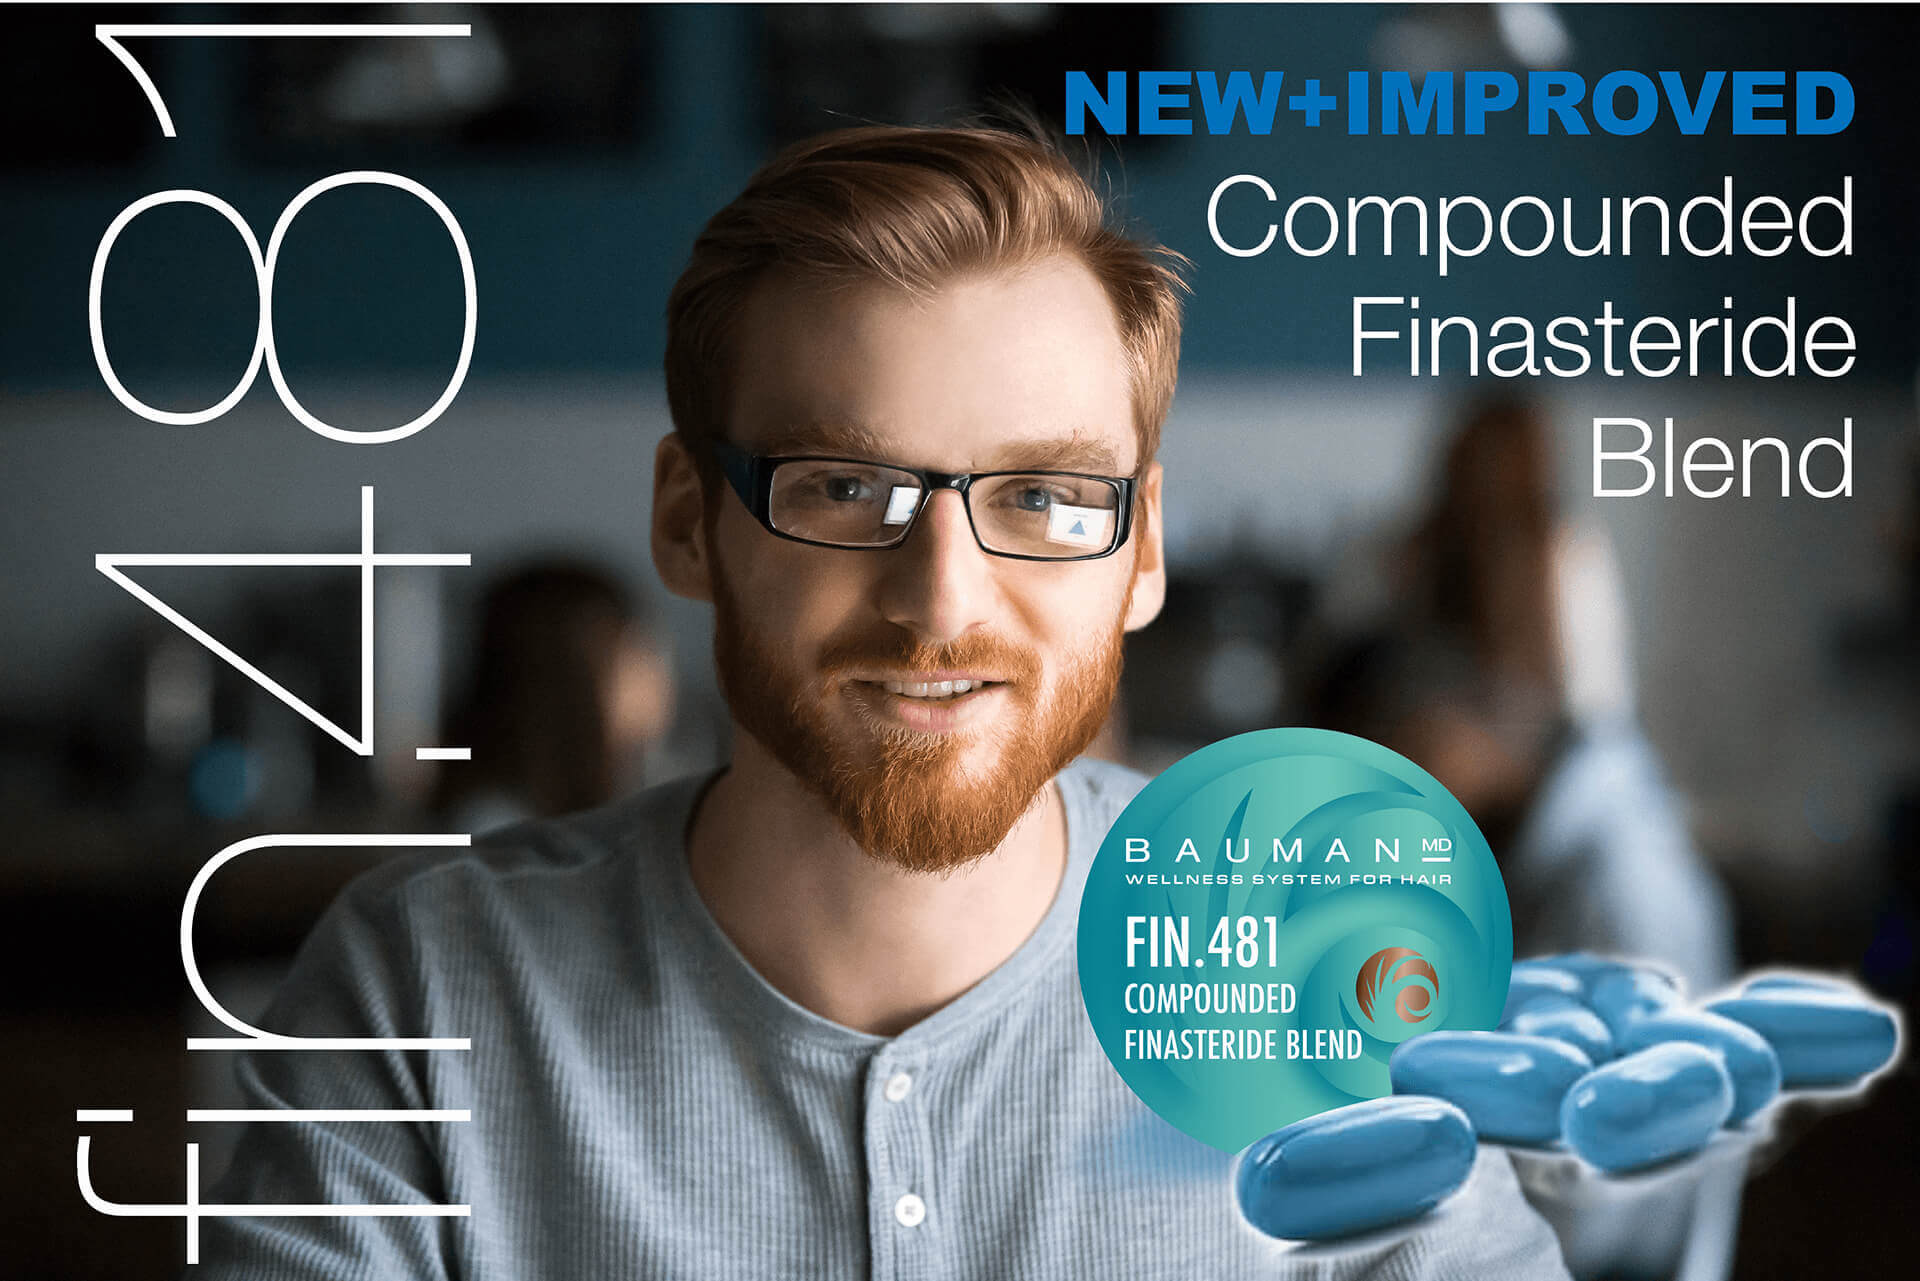 fin 481 red head model Compounded Finasteride: Fin.481